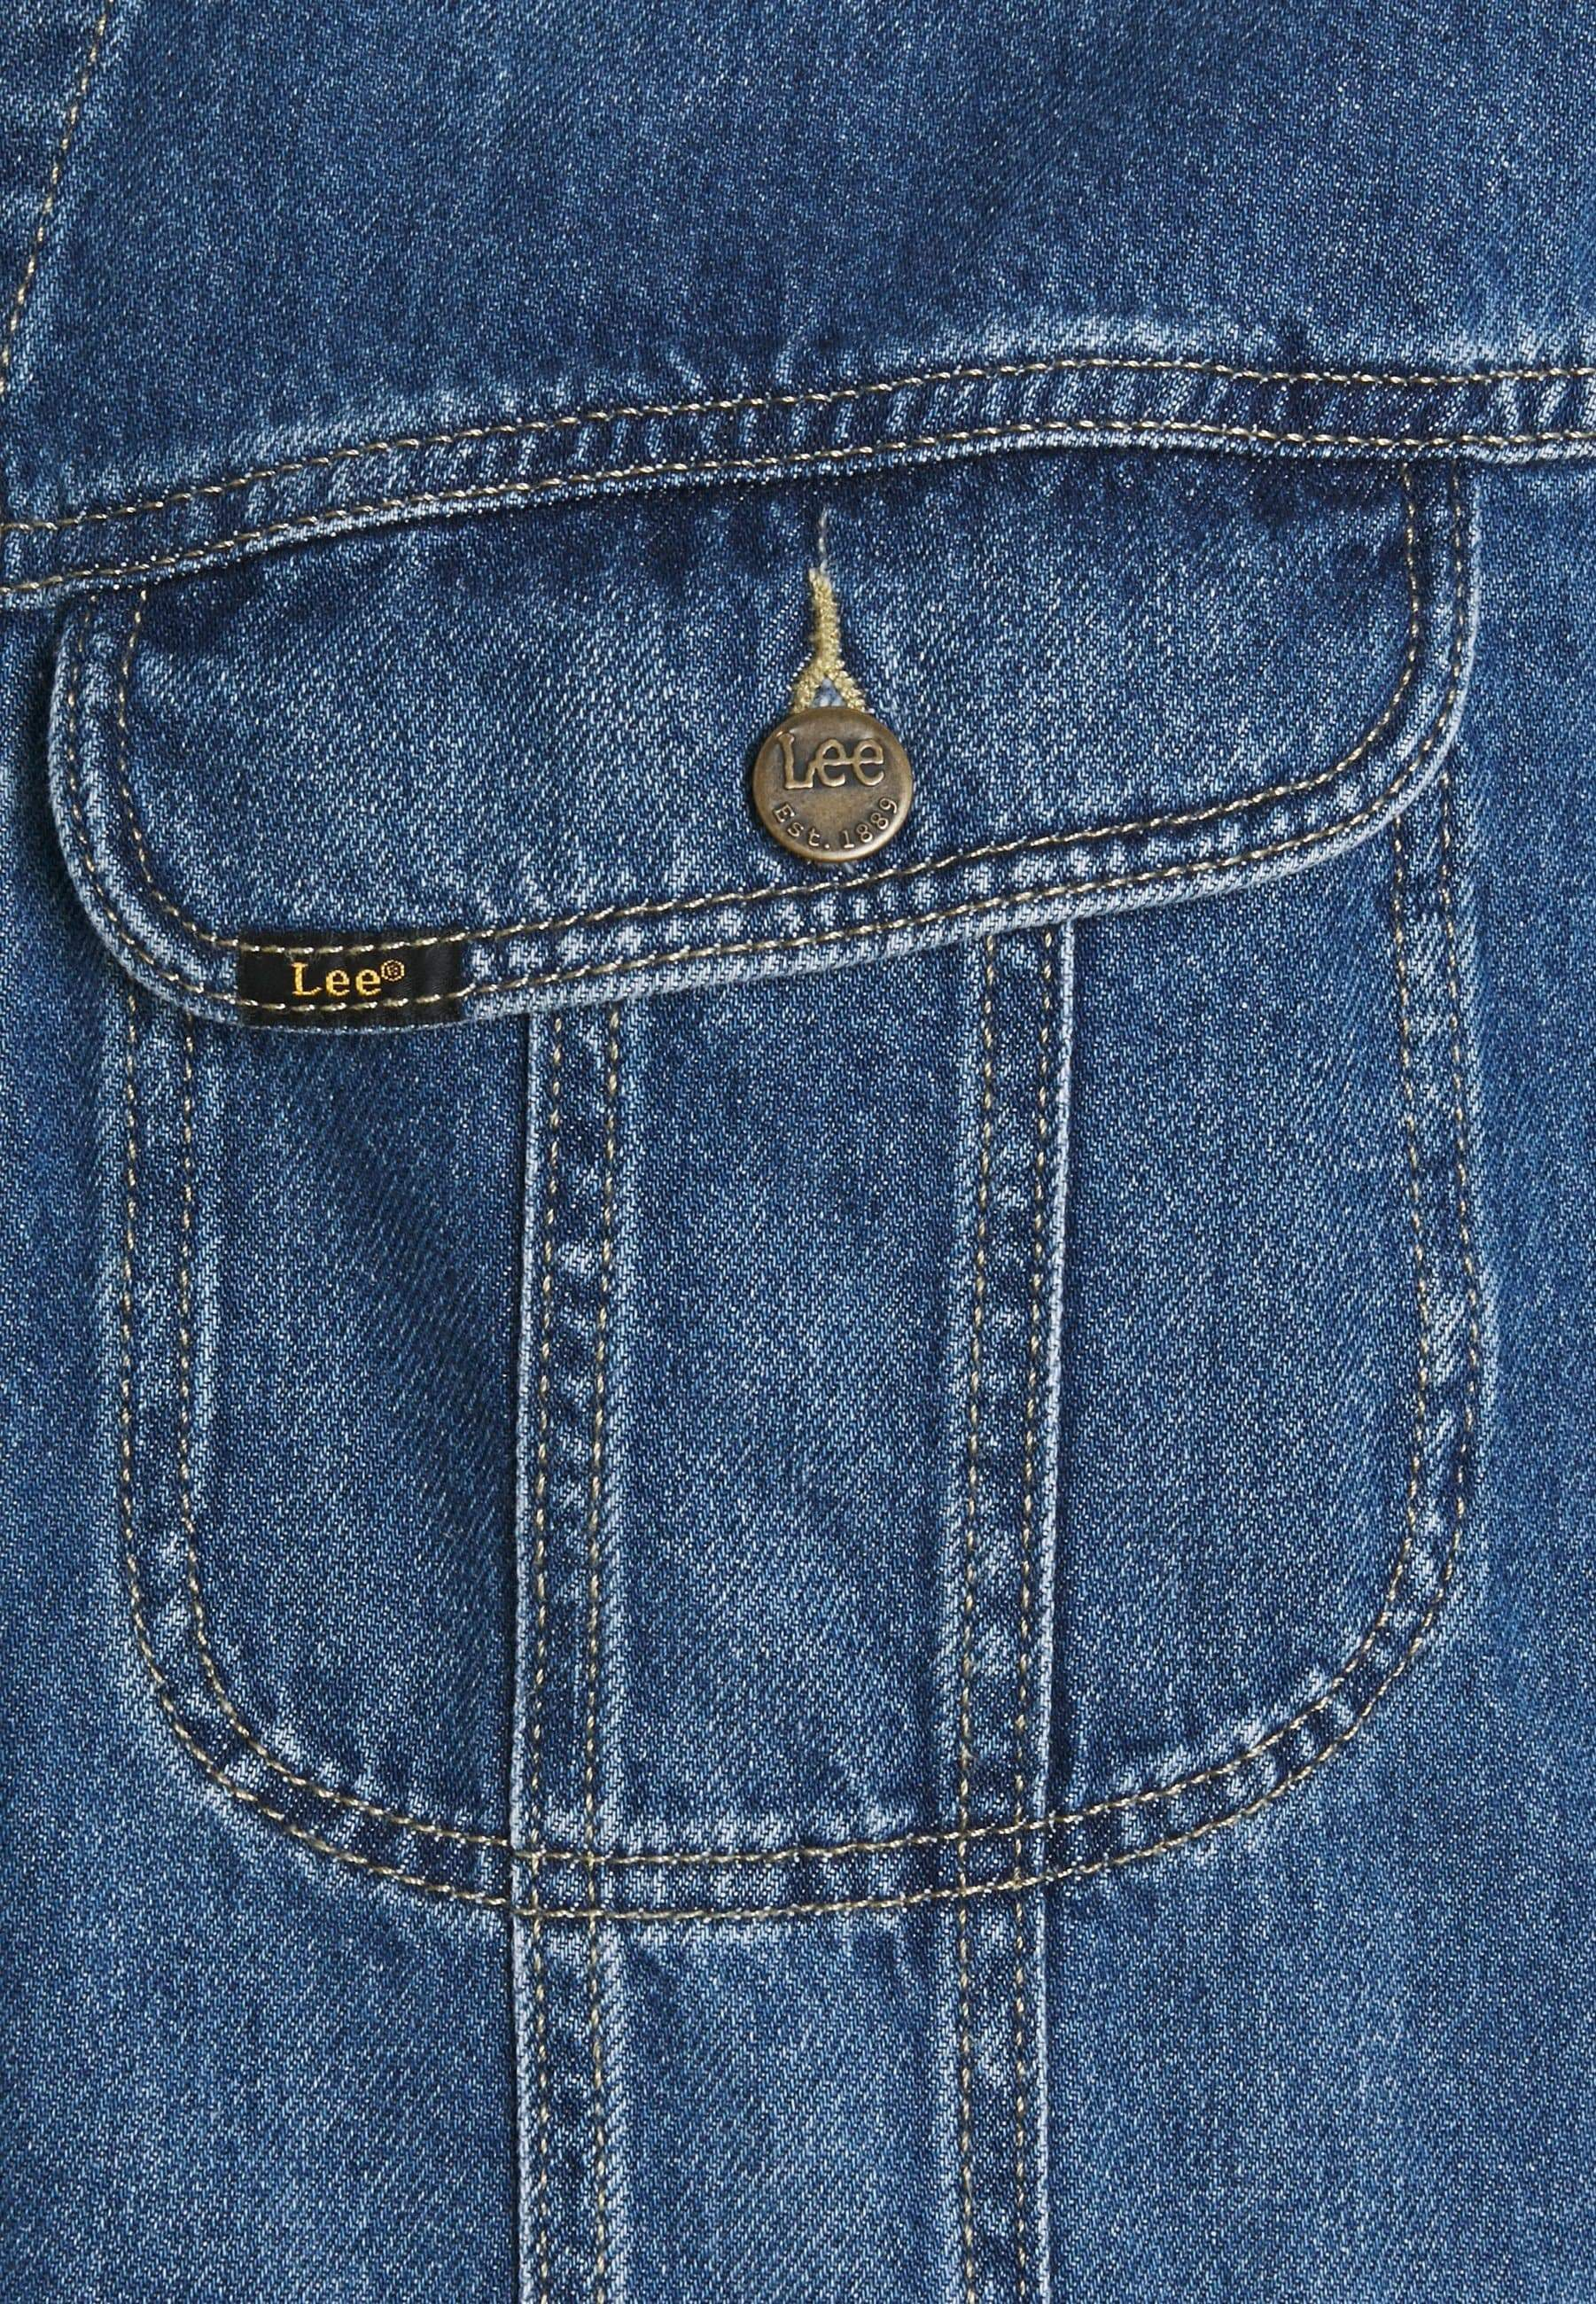 Men's Vintage Original LEE Blue Denim Jacket